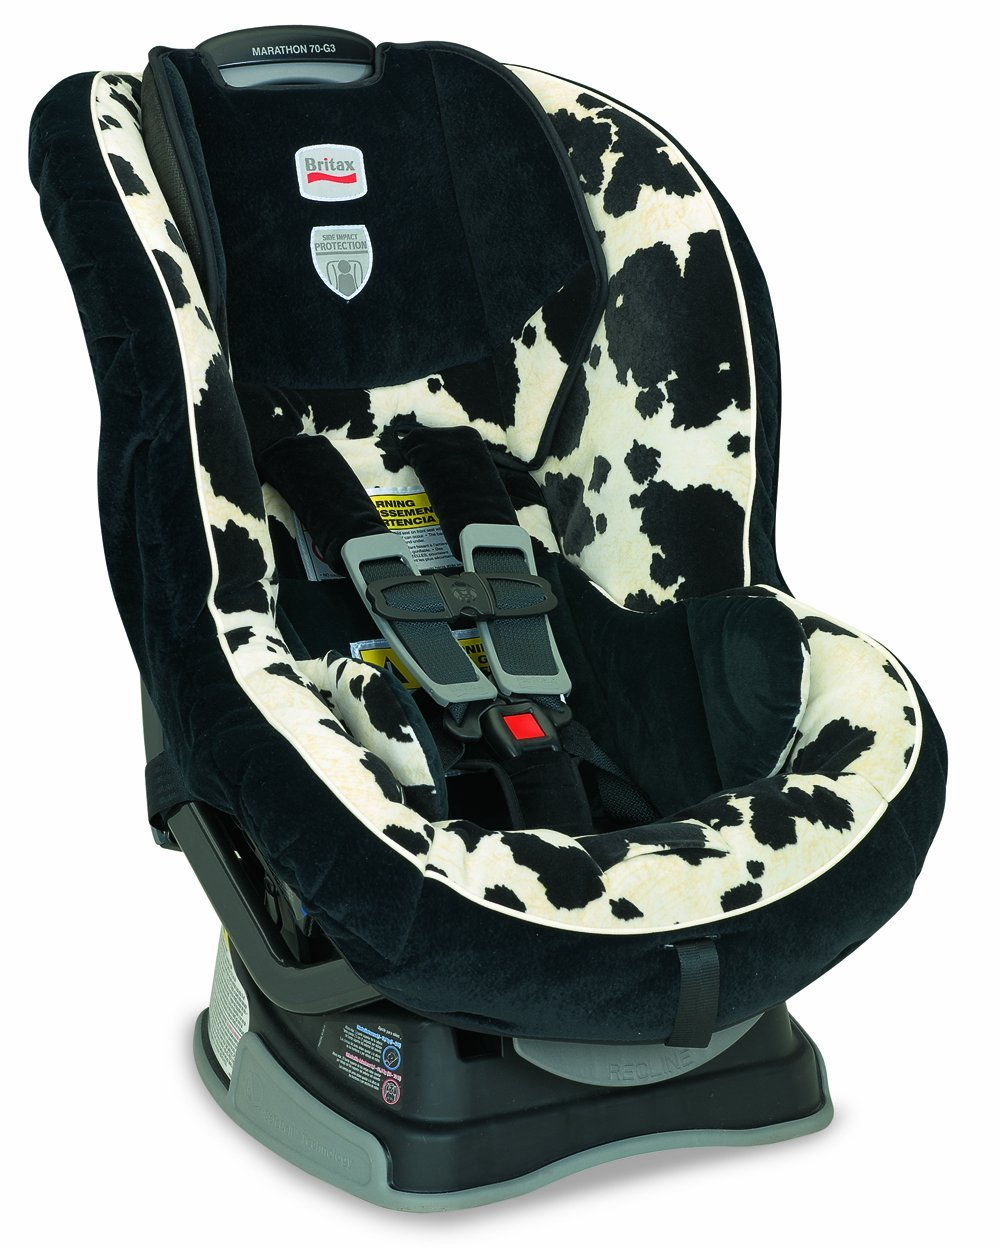 Britax Marathon 70-G3 Convertible Car Seat Review